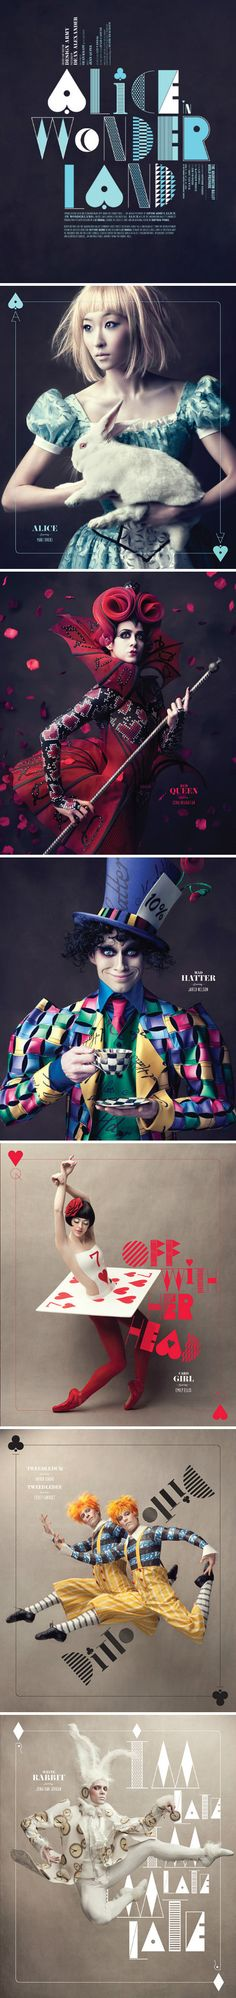 Fashion Shoot: Septime Webre's Alice in Wonderland,  Washington Ballet. Creative  Art Direction by Jake Lefebure and Pum Lefebure of Design Army. Photography by Dean Alexander.